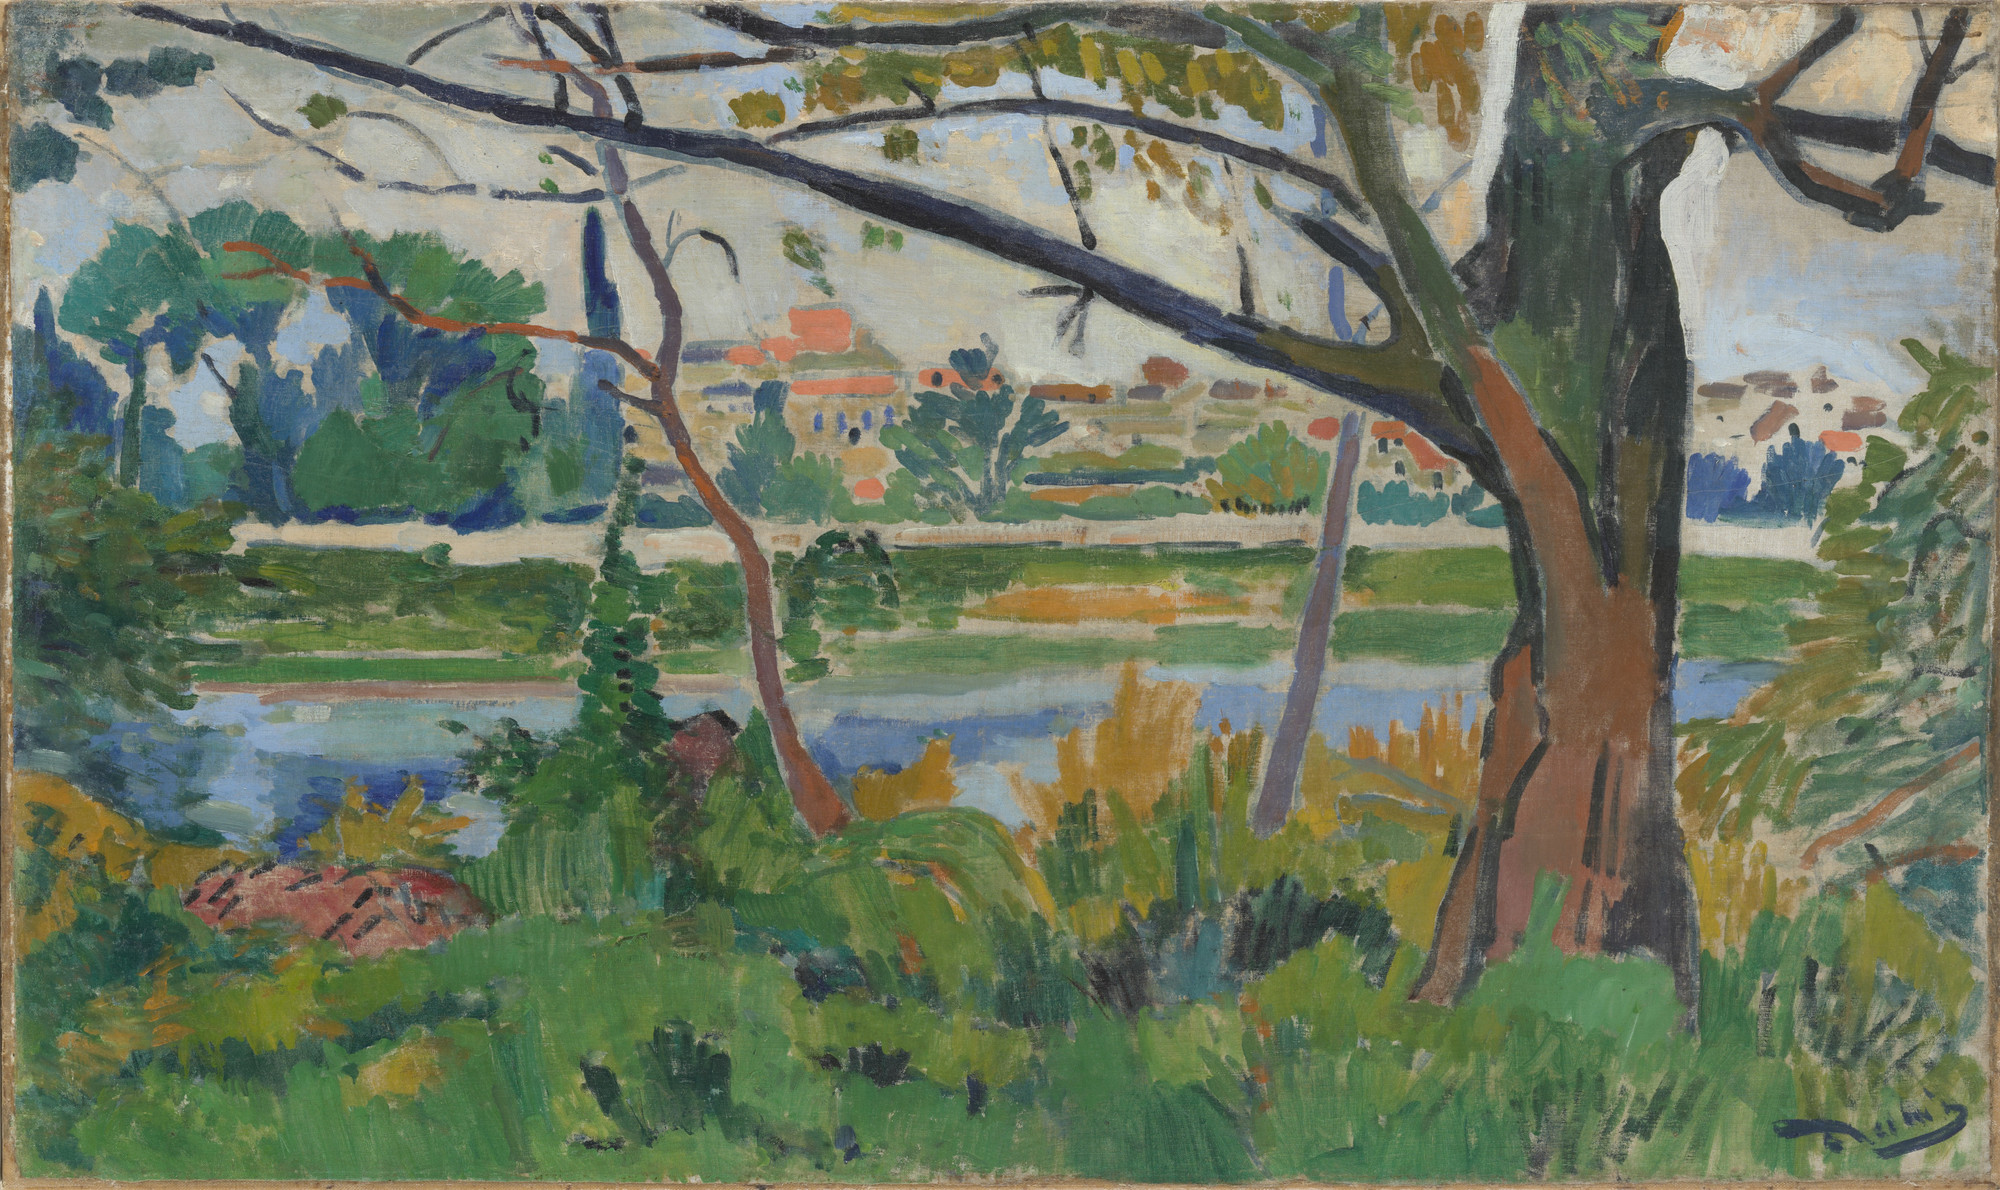 André Derain. The Seine at Chatou. 1906